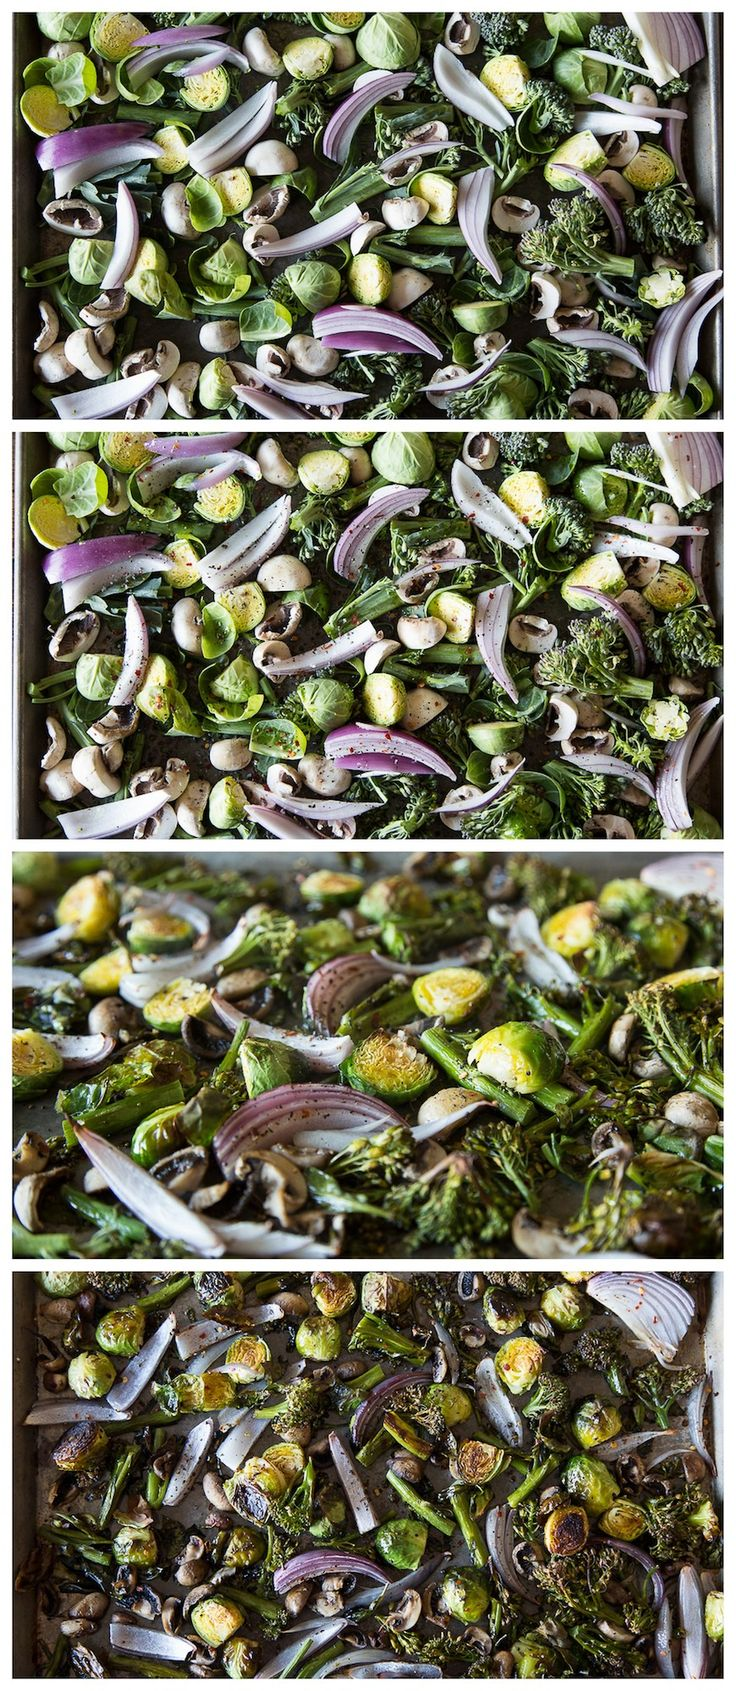 Roasted Vegetables 101 - how to make perfectly roasted vegetables every single time!